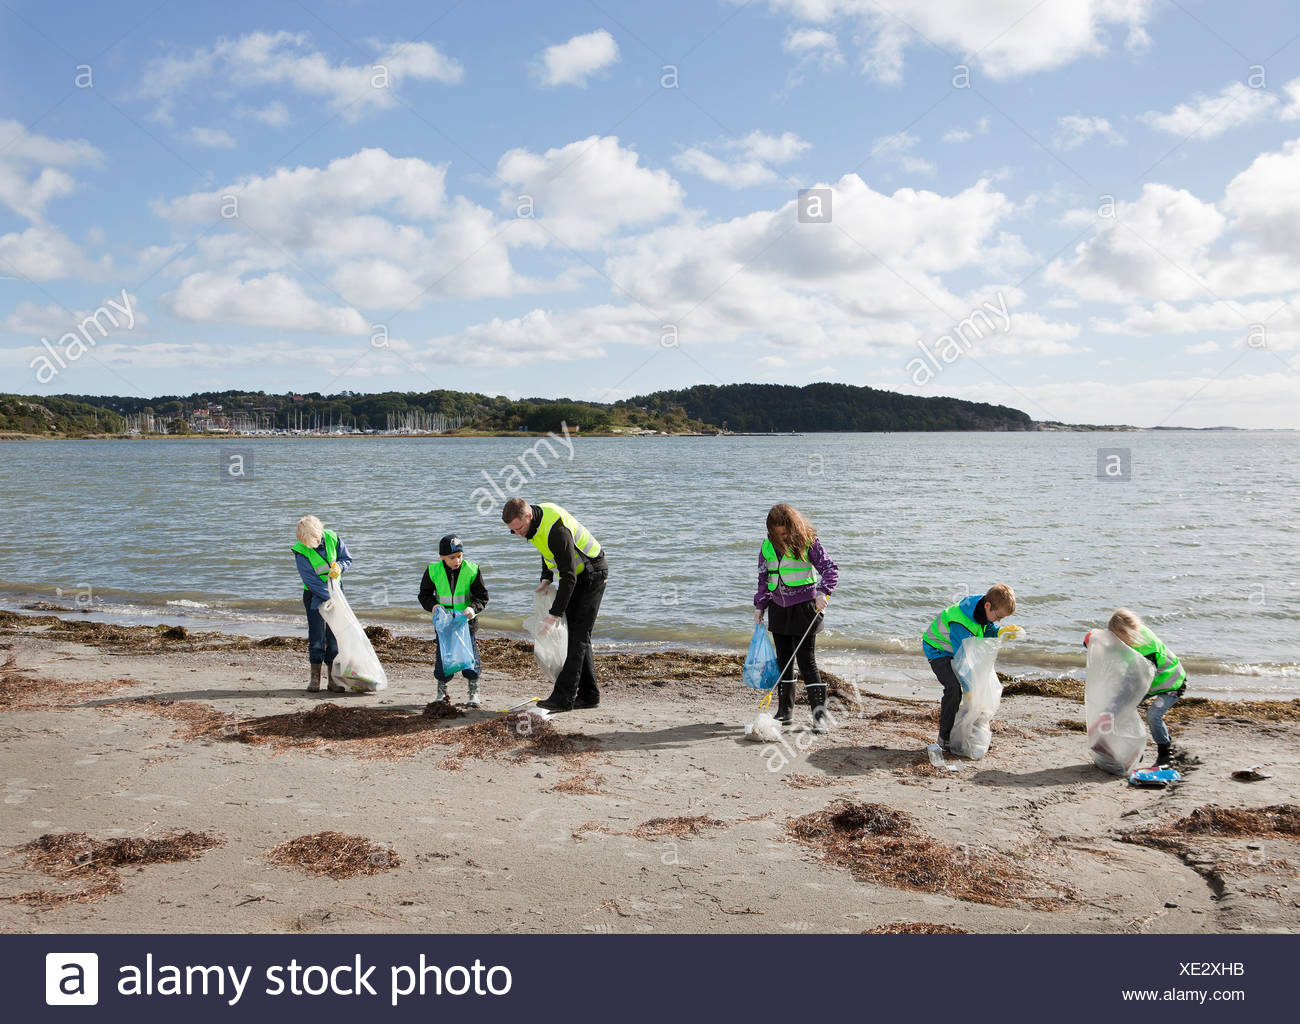 Man and children cleaning beach - Stock Image